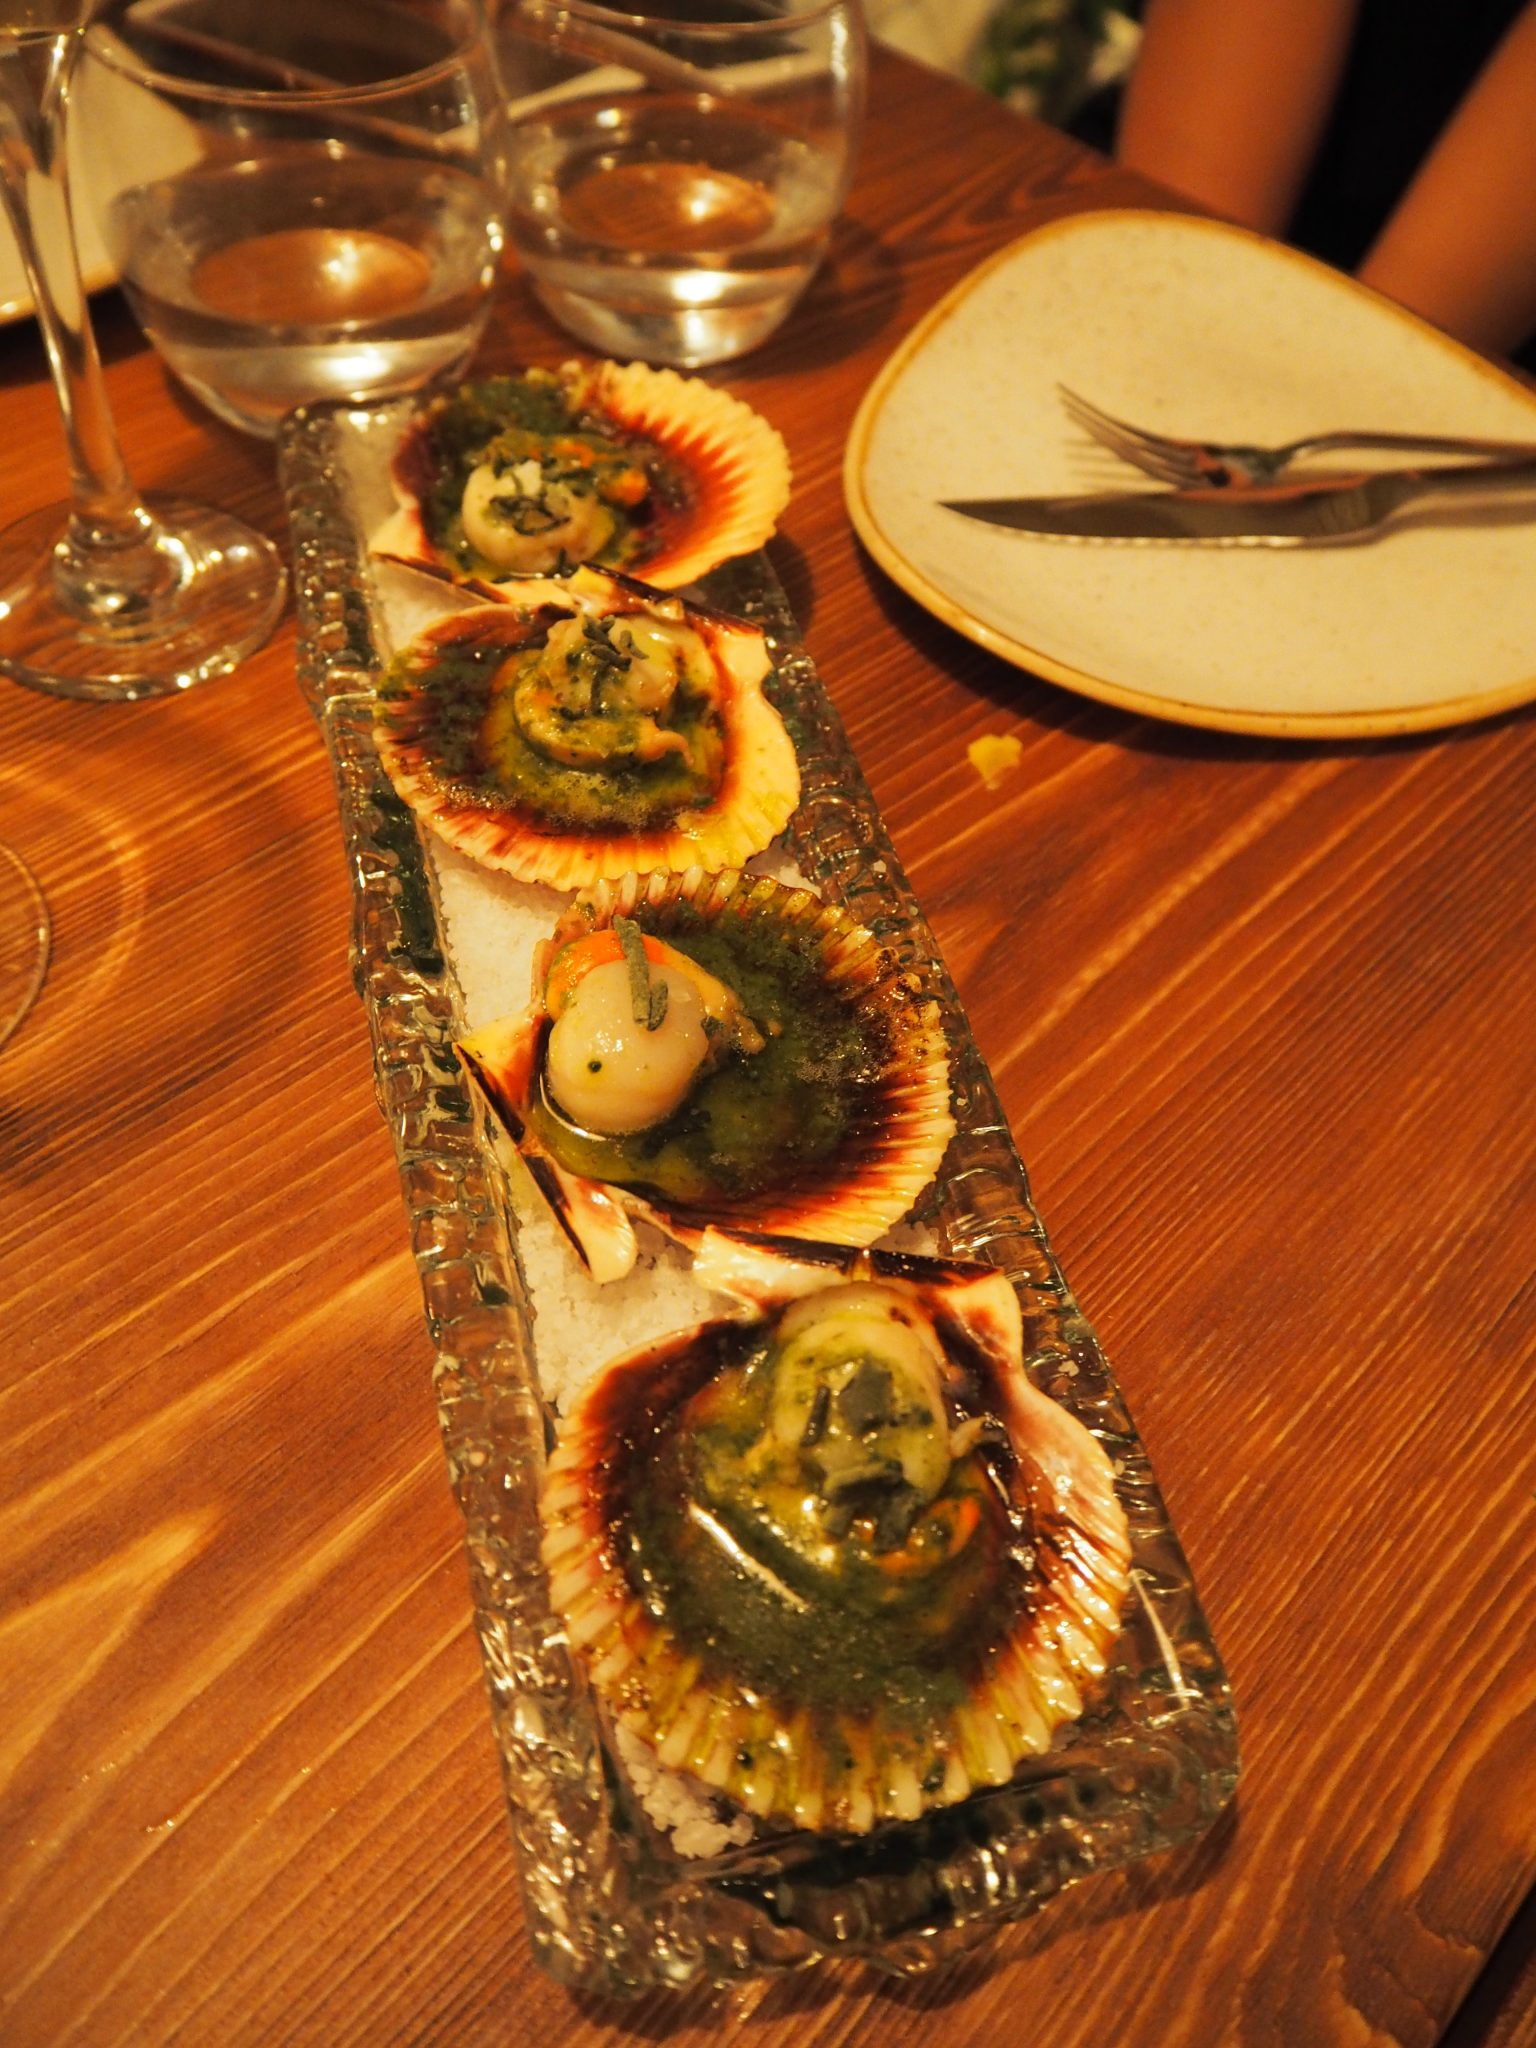 Baby scallops with codium seaweed butter / Pétoncles au beurre d'algues (codium)